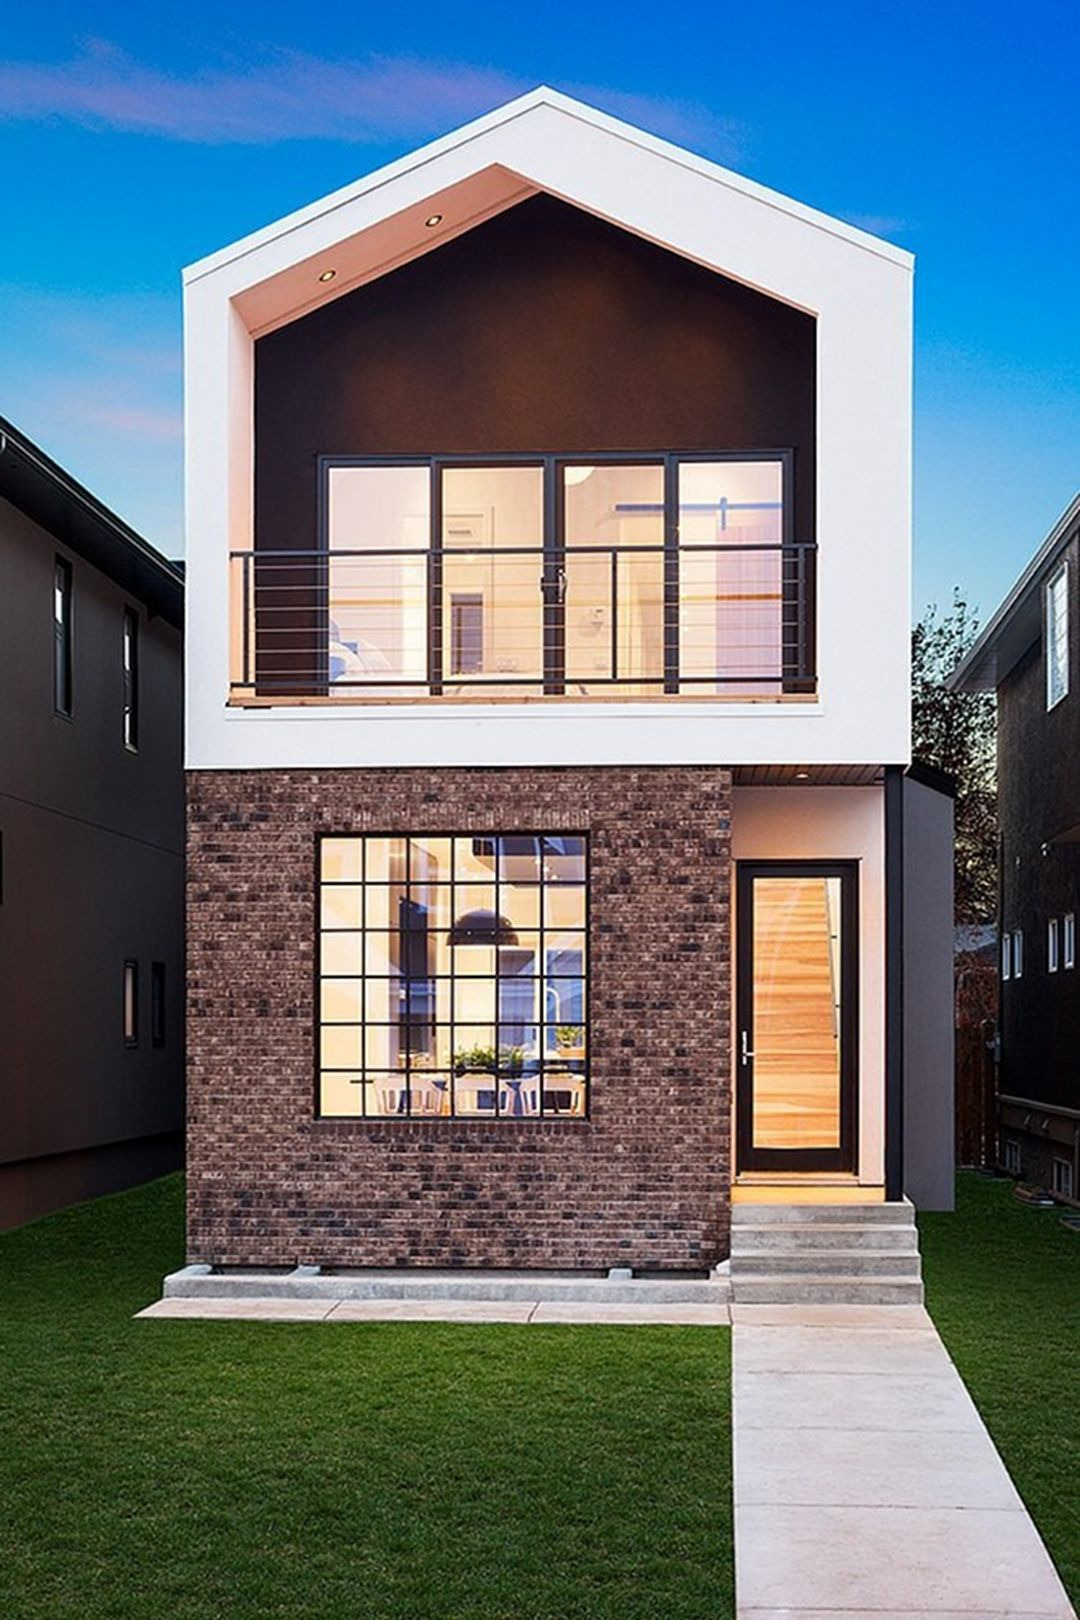 Small and Modern House Design Lovely 25 Awesome Modern Tiny Houses Design Ideas for Simple and